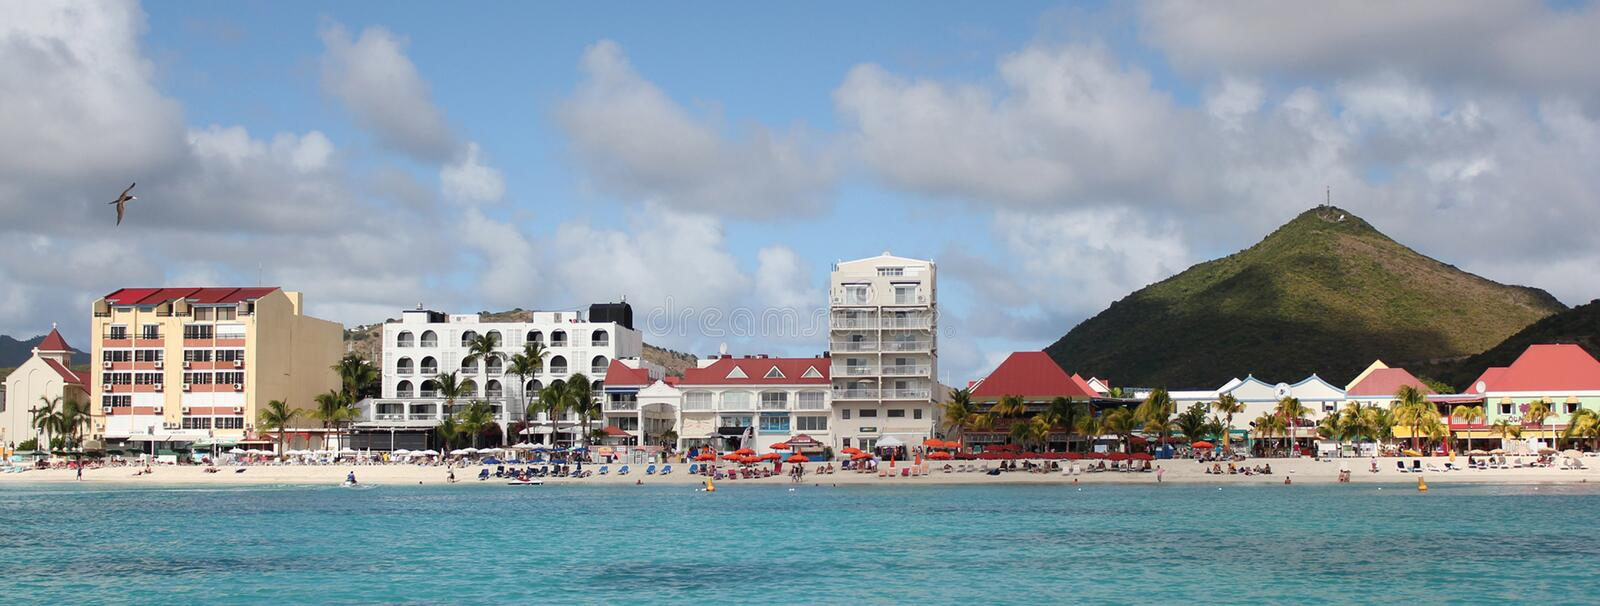 The port city of Phillipsburg, St. Martin, DWI royalty free stock photography